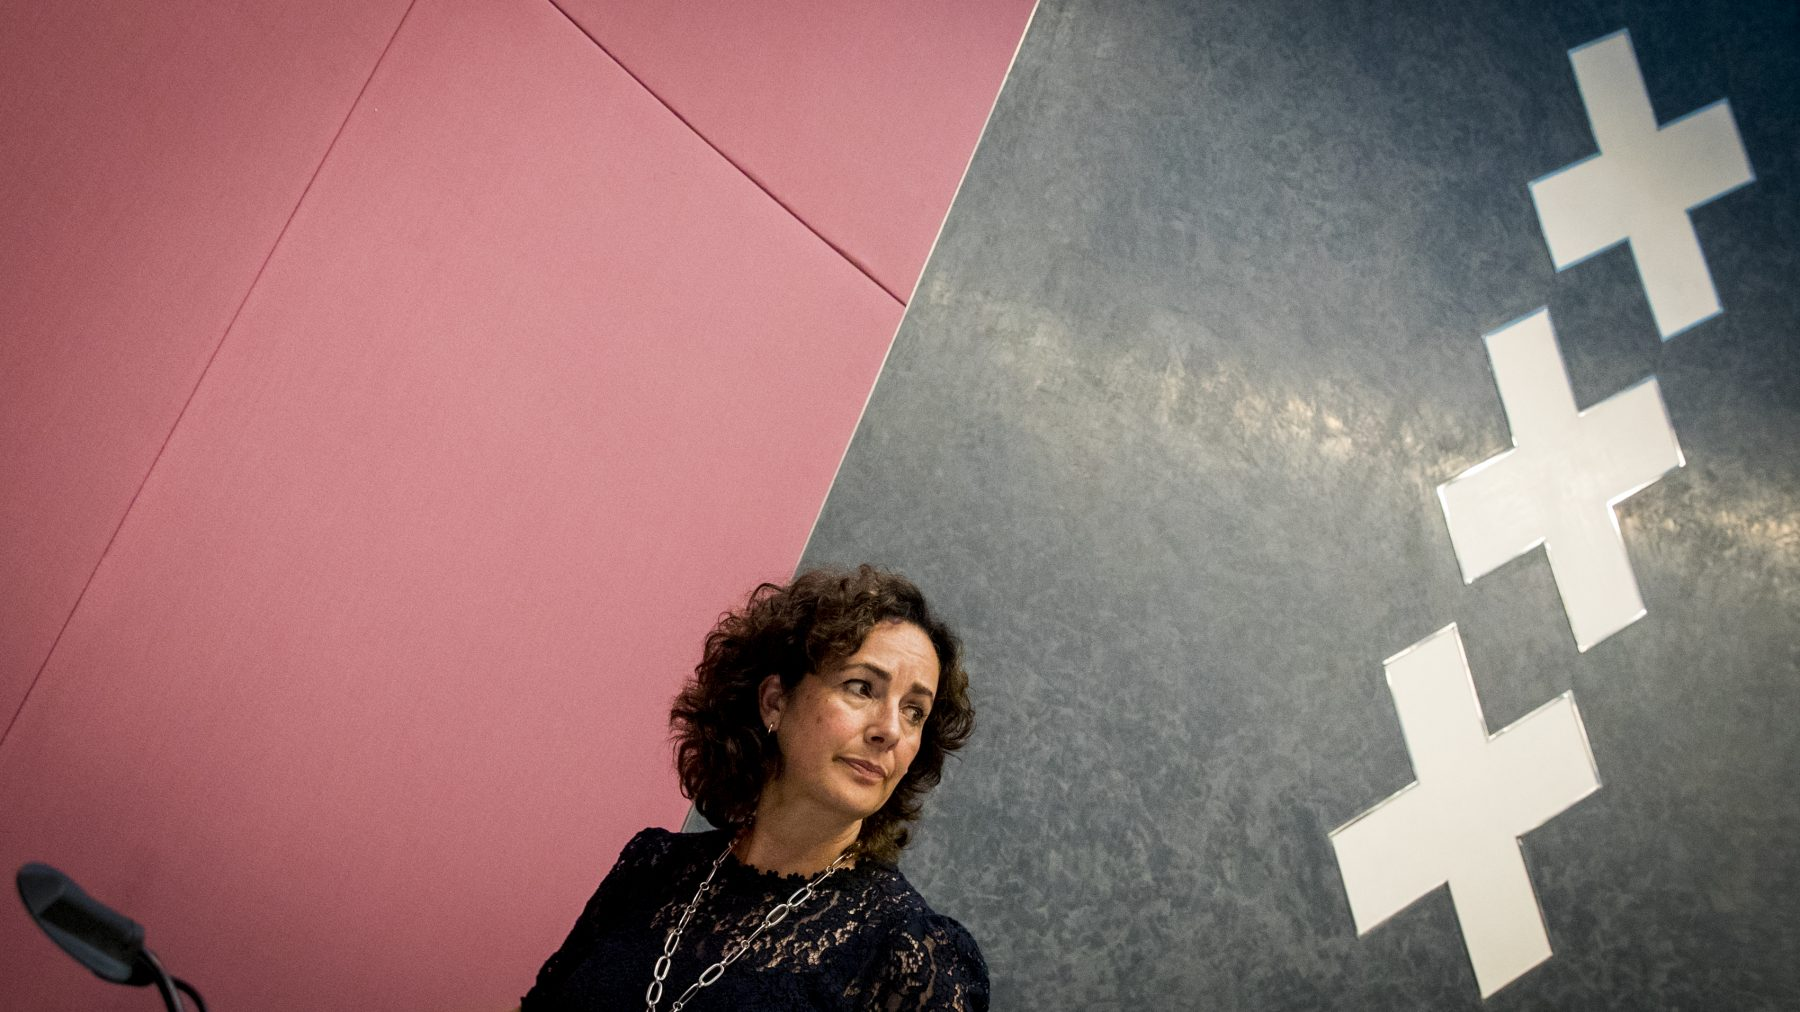 femke-halsema-gesteund-door-politici-journalisten